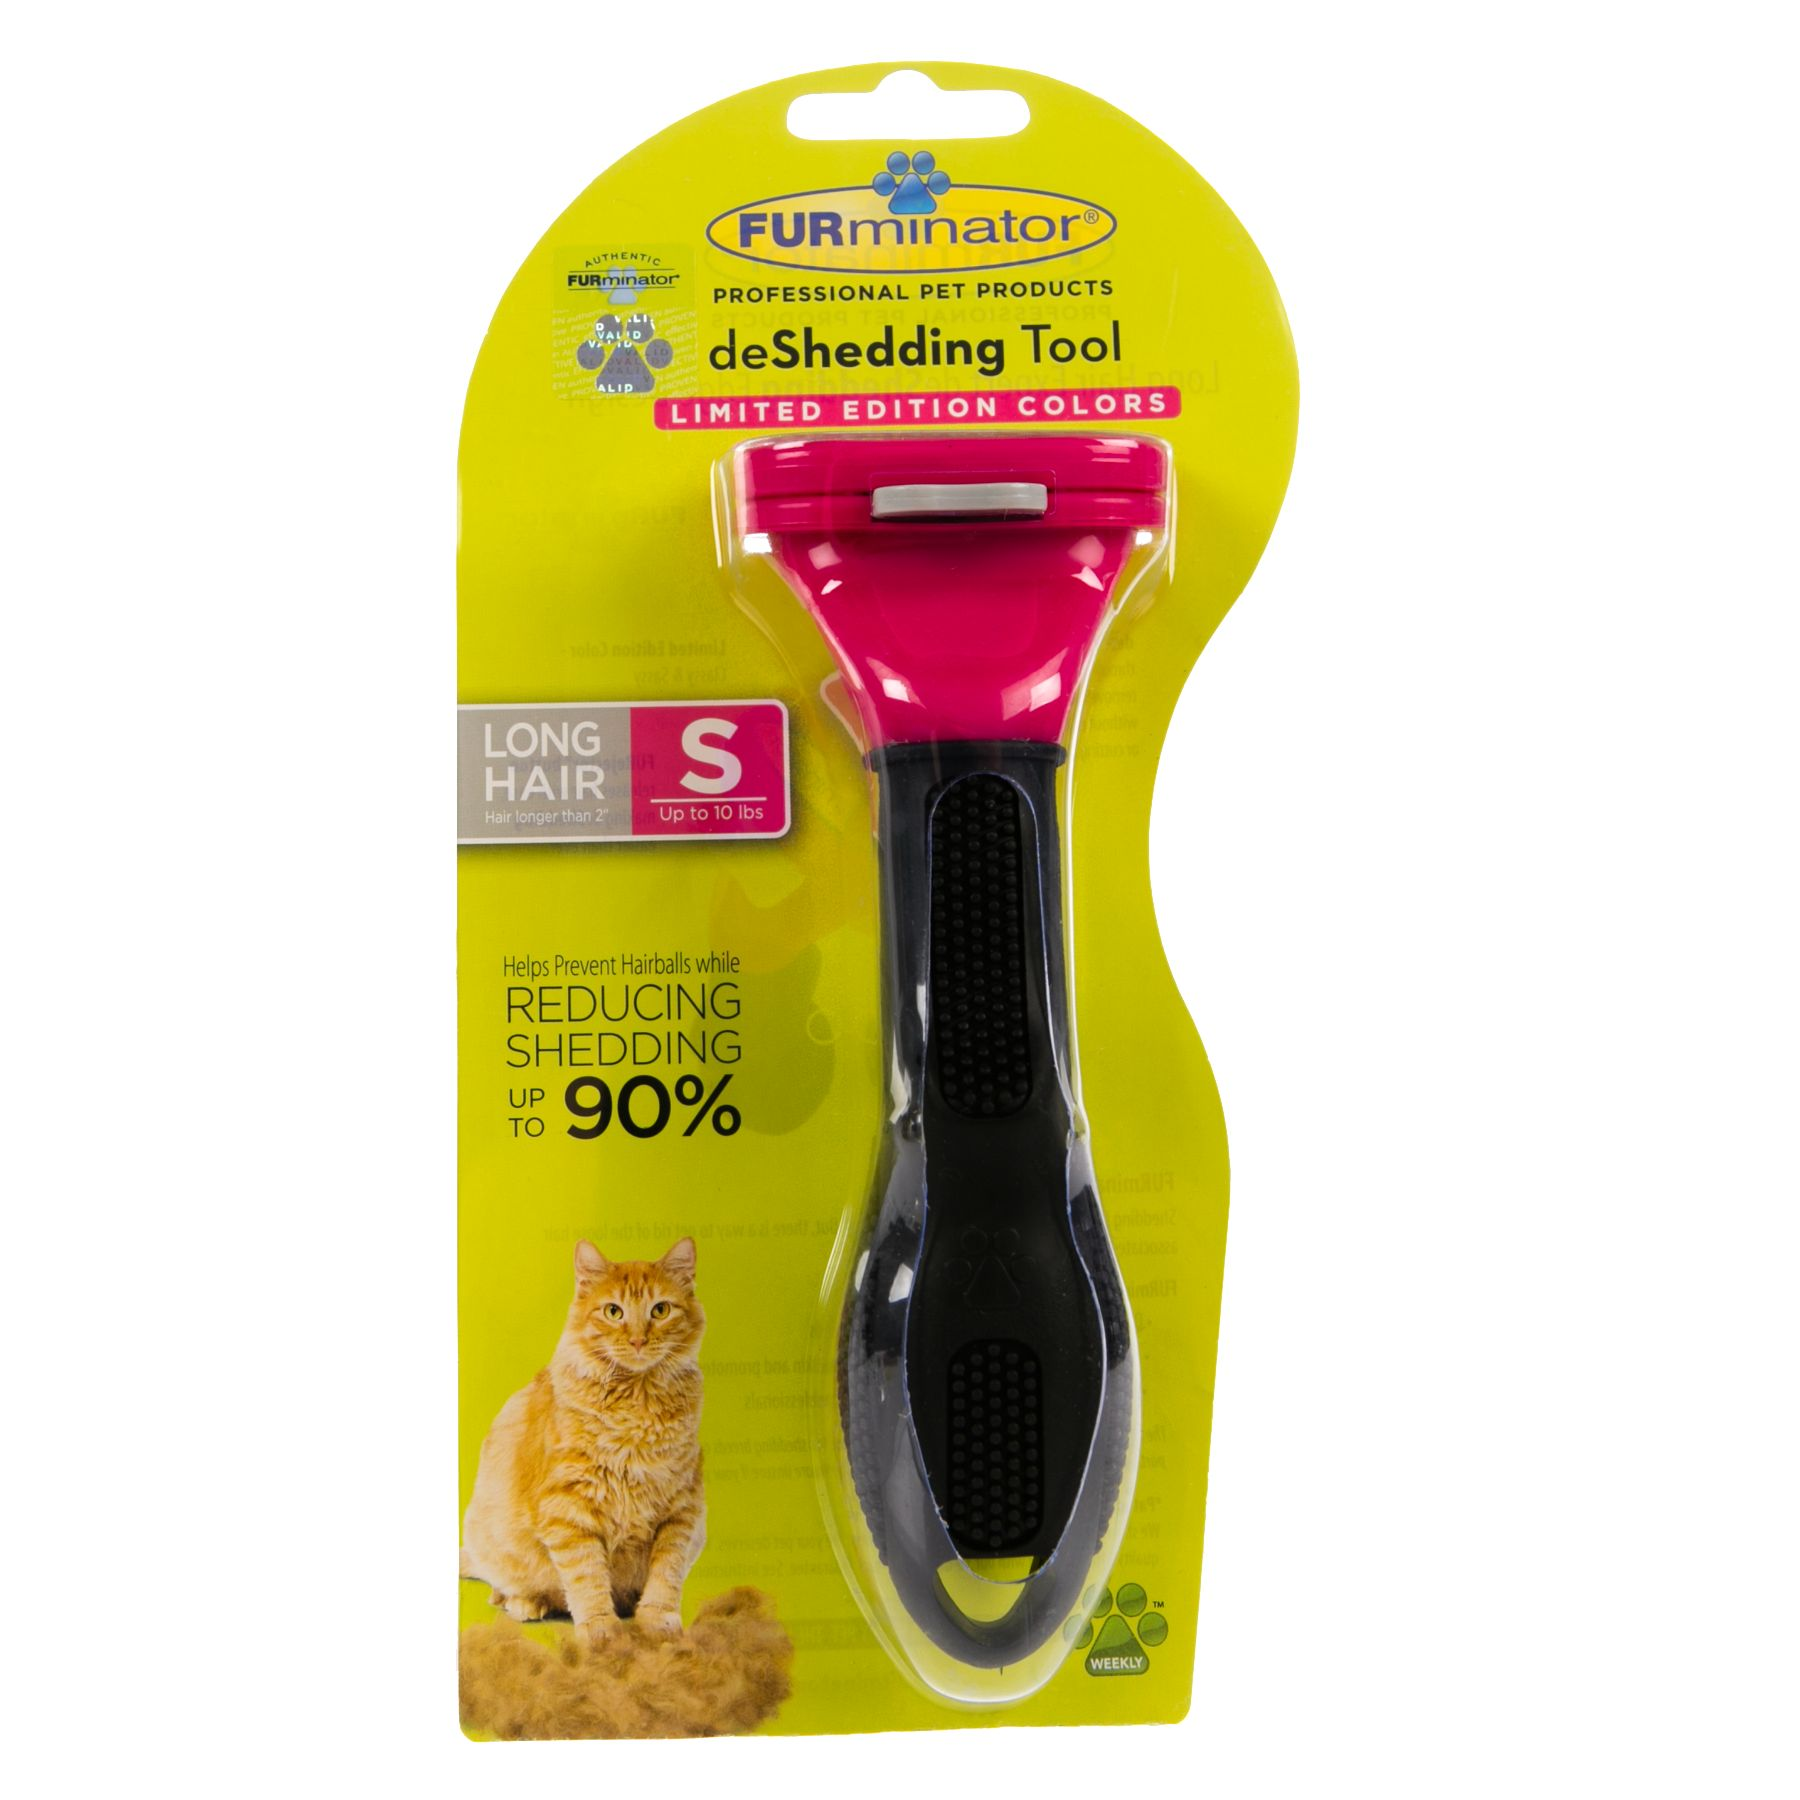 FURminator deShedding Long Haired Cat Tool size: Small 5238718